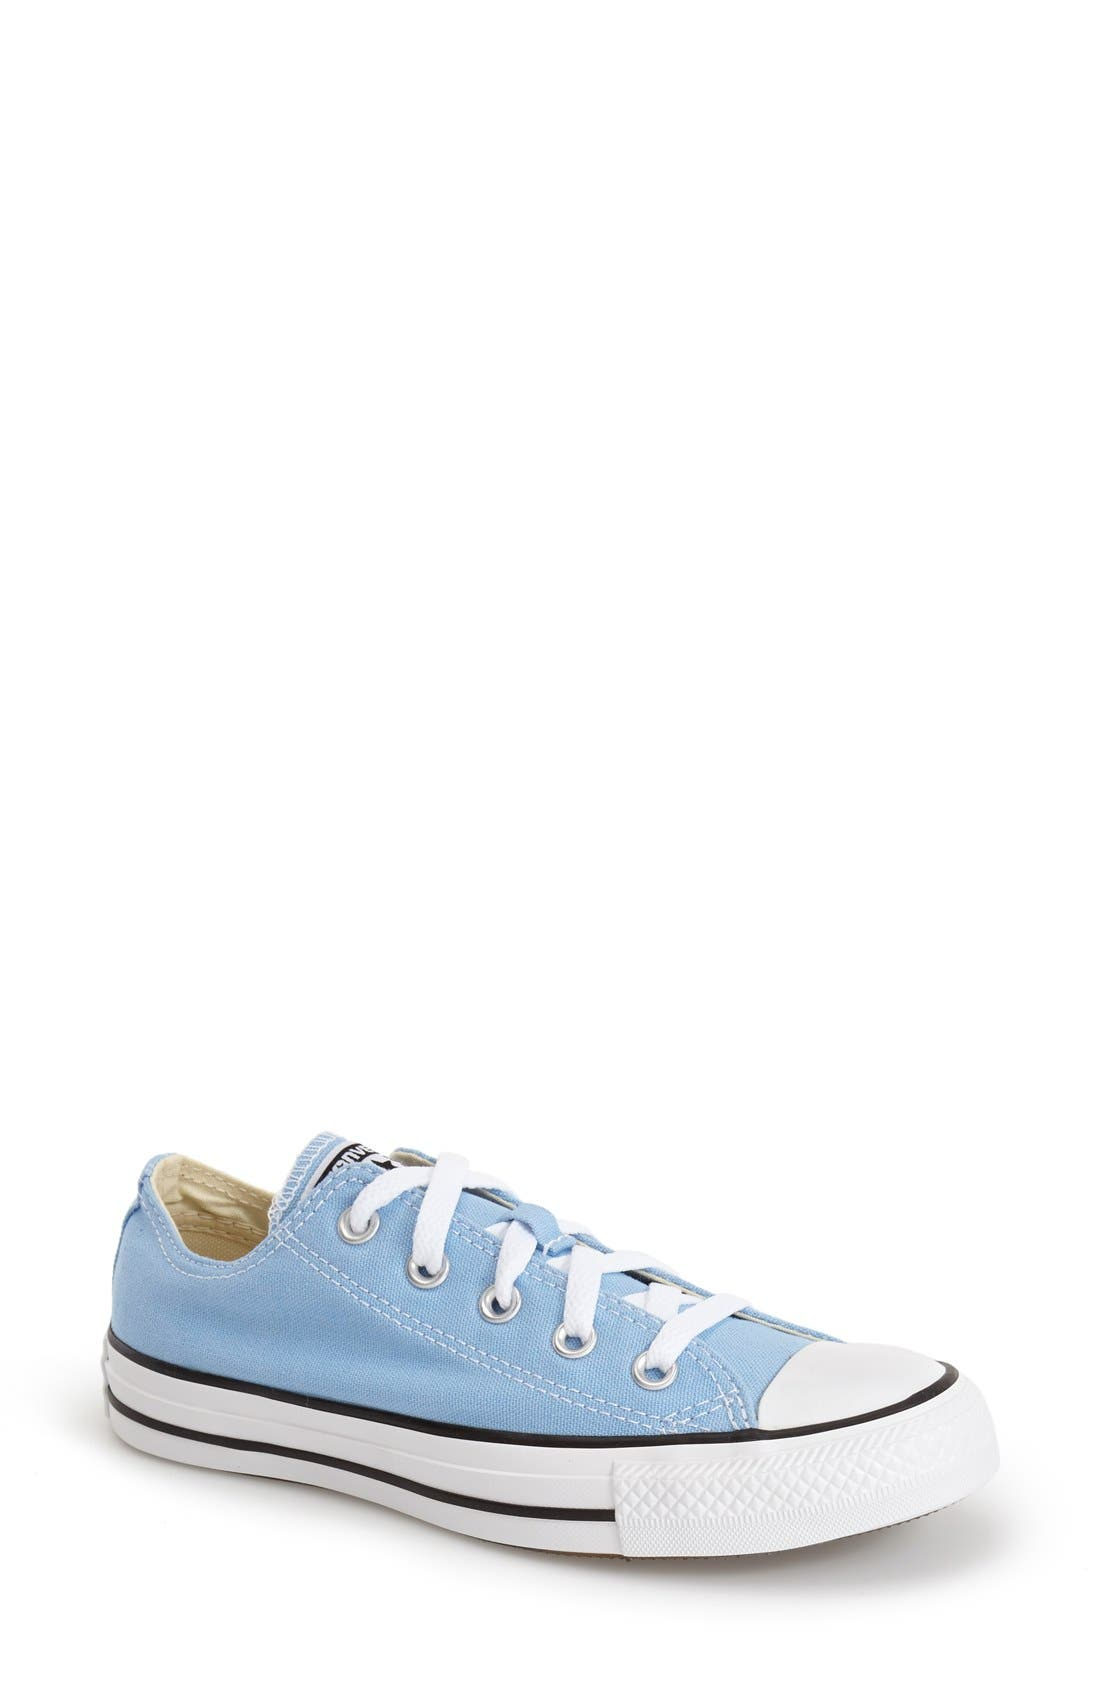 Alternate Image 1 Selected - Converse Chuck Taylor® All Star® Sneaker (Women)